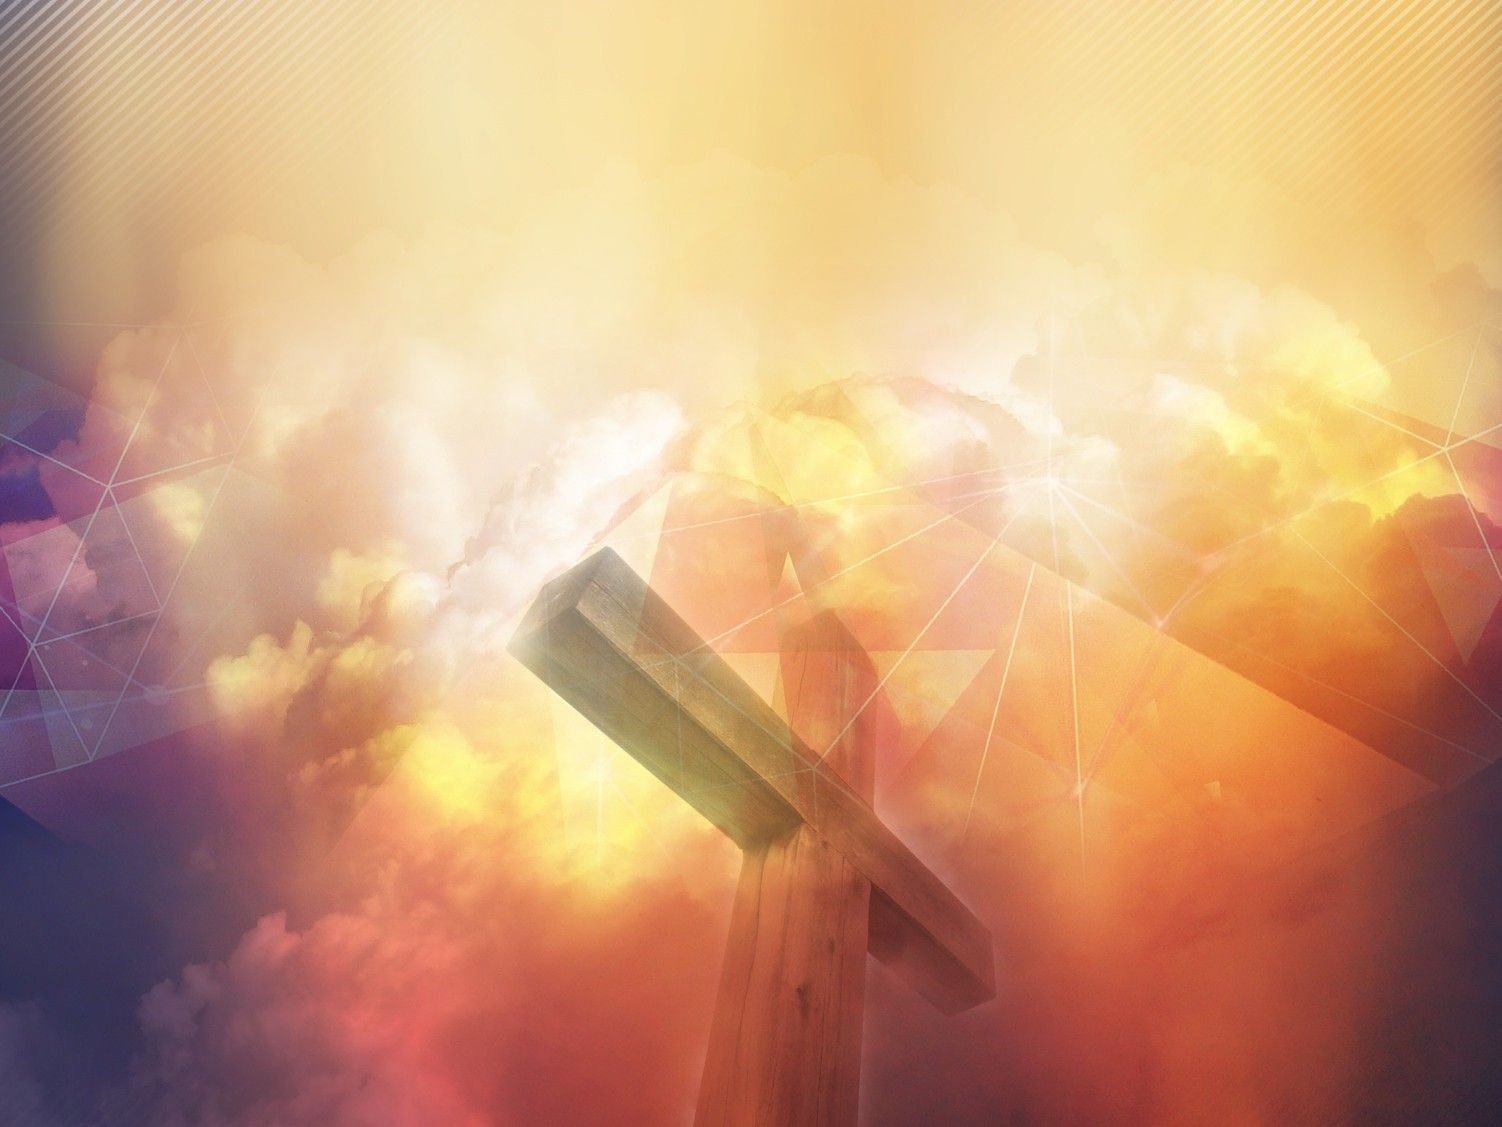 free christian powerpoint templates for worship gallery, Modern powerpoint